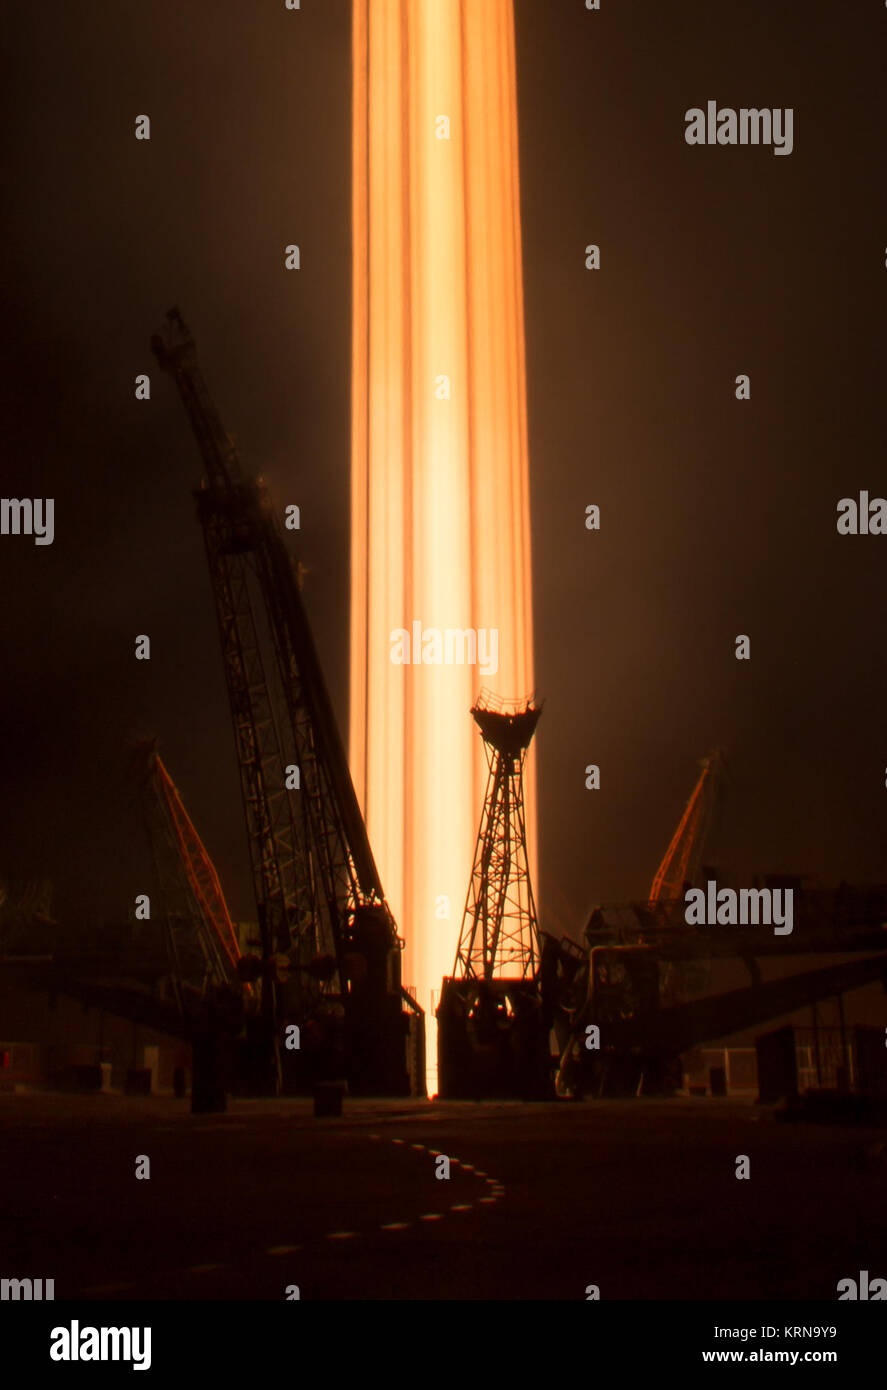 In this long exposure photograph, the Soyuz MS-03 spacecraft is seen launching from the Baikonur Cosmodrome with - Stock Image